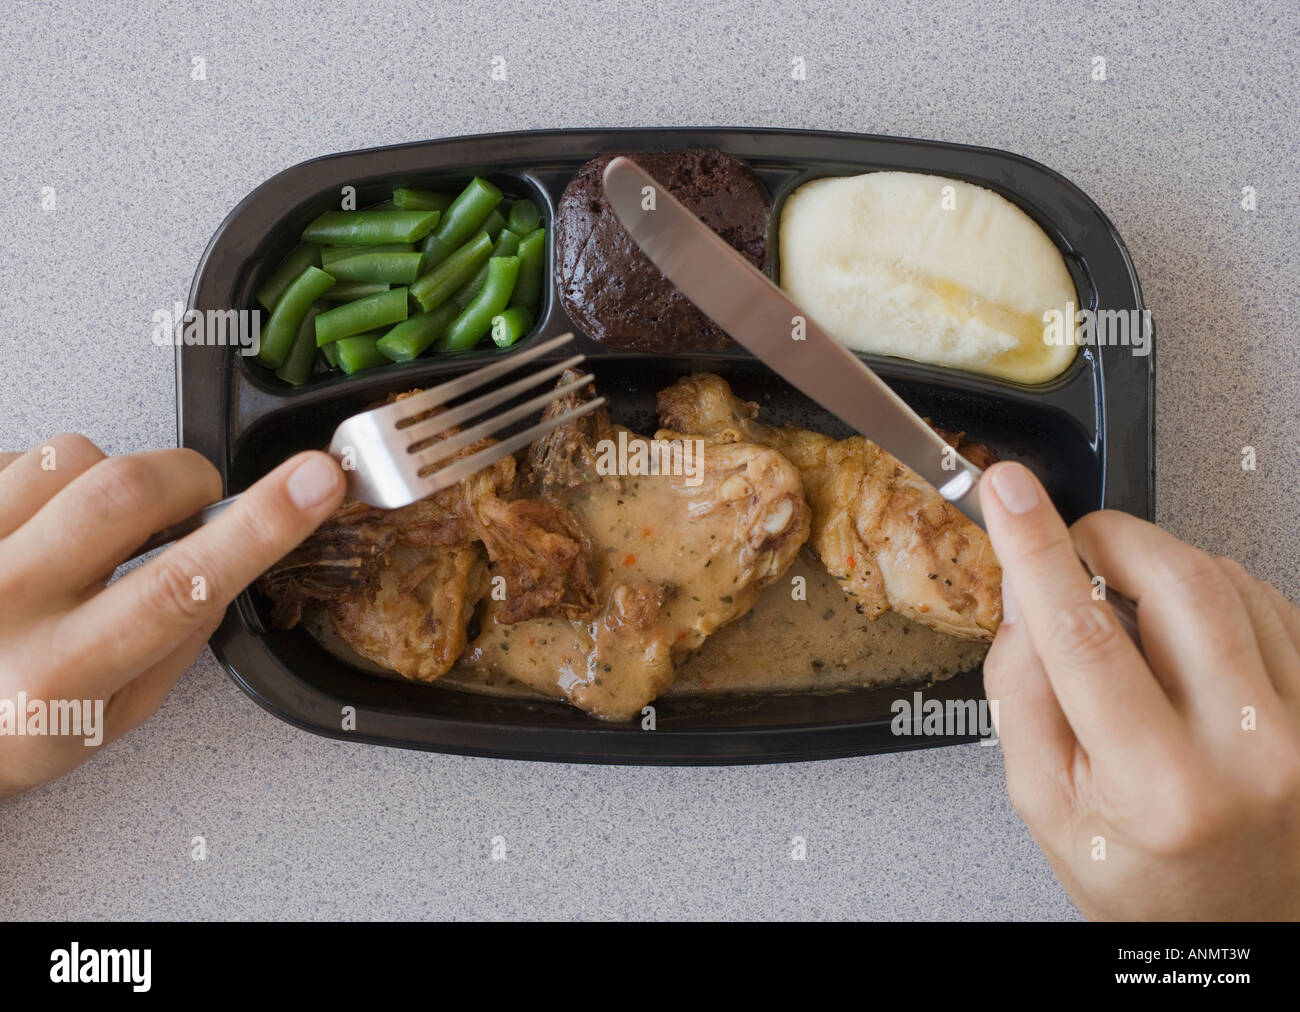 Man eating TV dinner - Stock Image